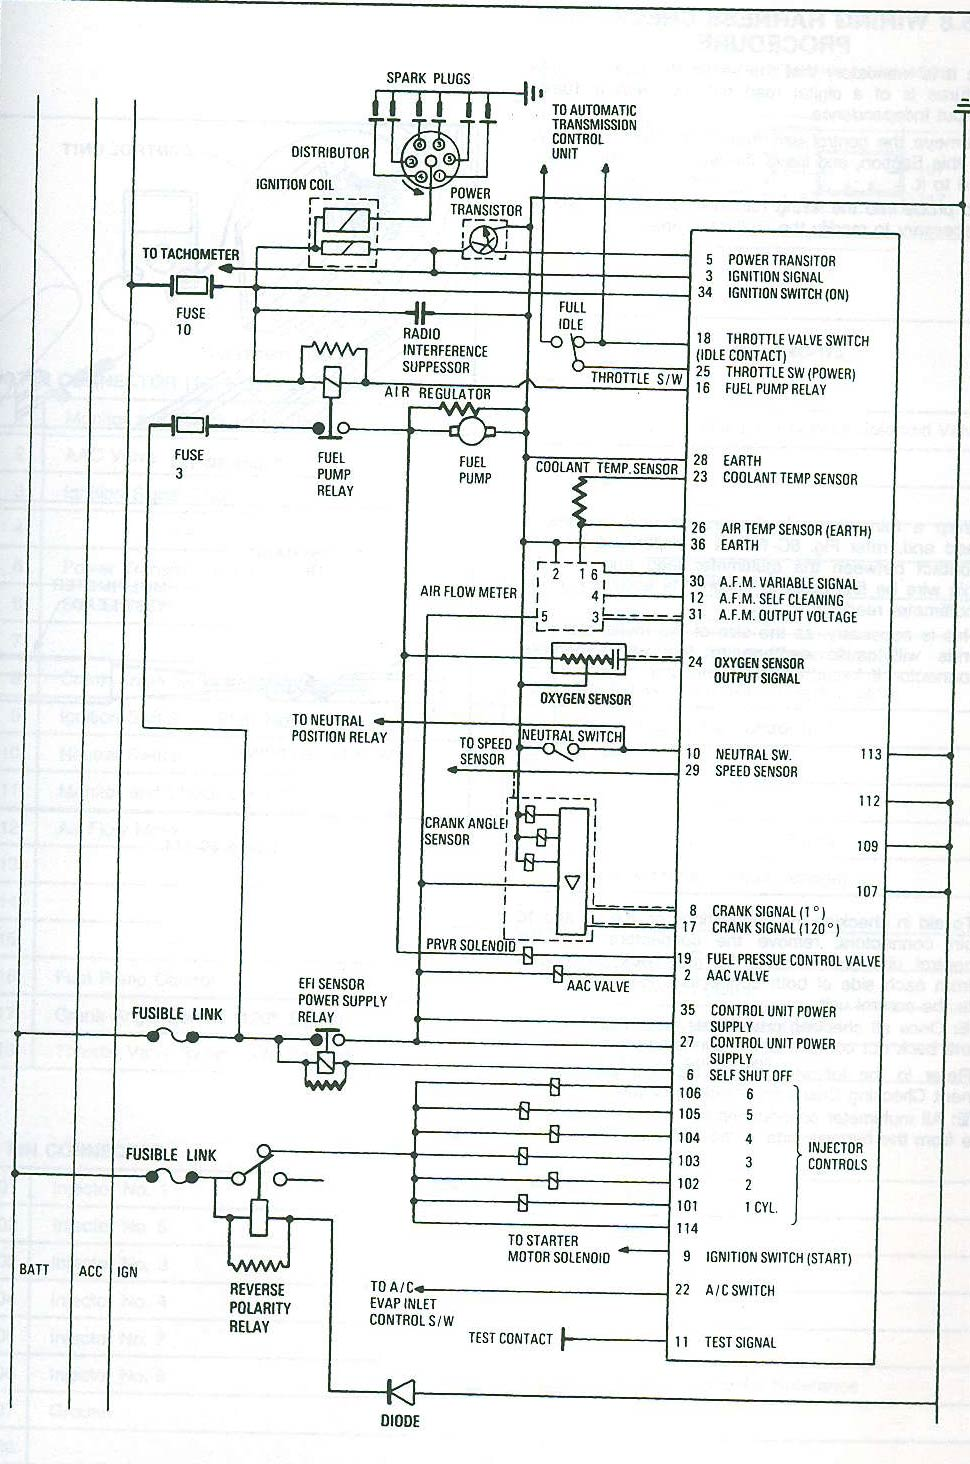 nissan patrol wiring diagram gq wiring diagram sort nissan patrol headlight wiring diagram nissan patrol wiring diagram [ 970 x 1464 Pixel ]